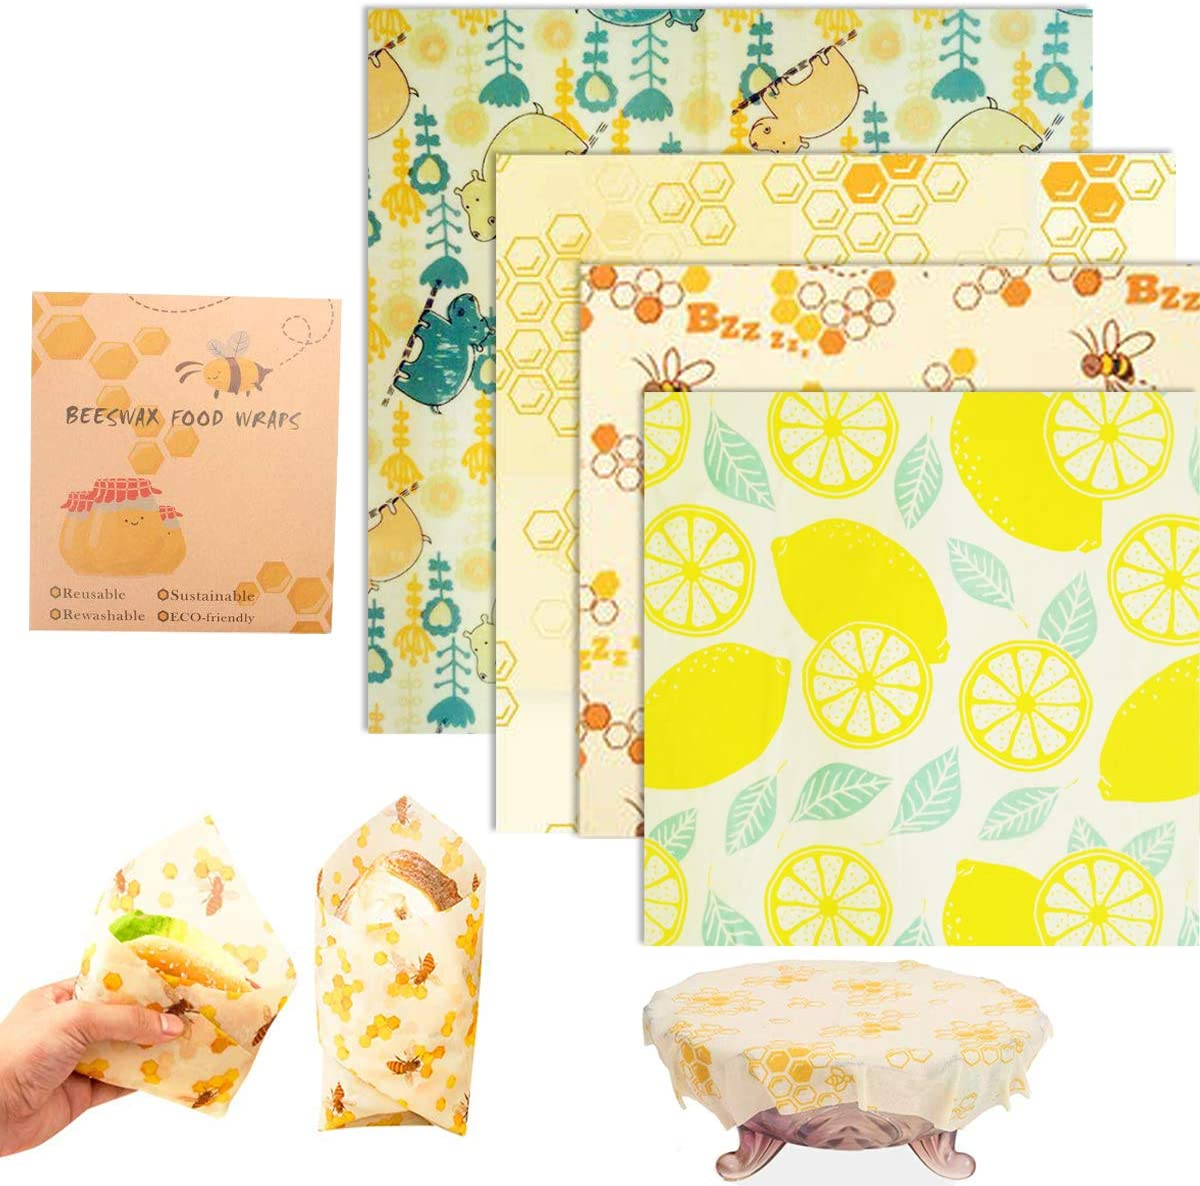 Reusable Beeswax Food Storage Wraps 4 Pack, Eco Friendly Wax Wraps for Food, Healthy Alternative to Saran Wrap - 1 Large, 2 Medium, 1 Small